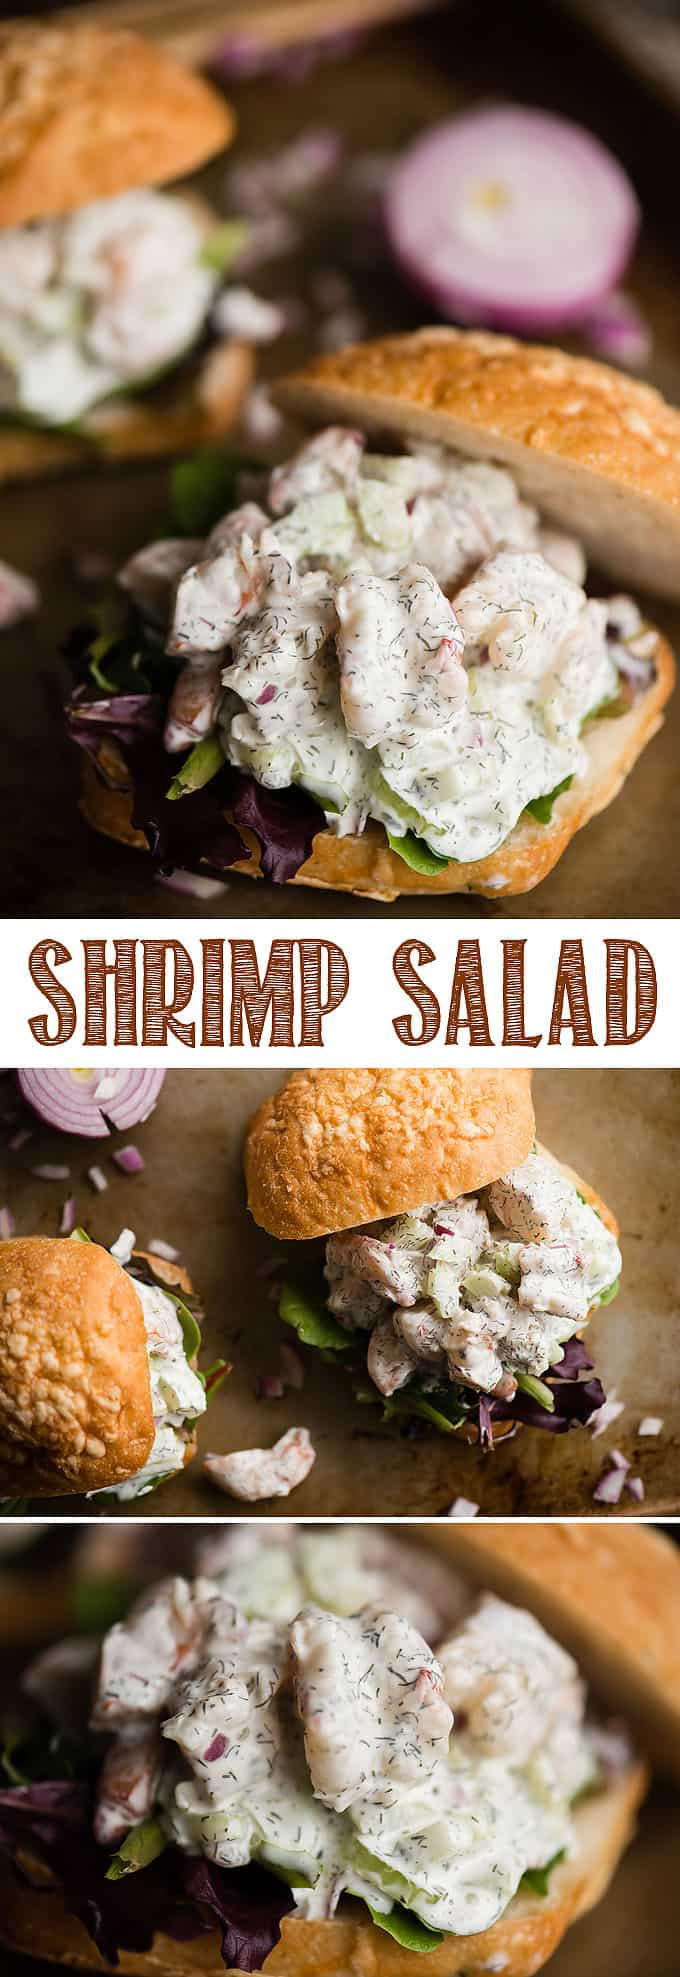 Shrimp Salad is very similar to everyone's favorite chicken salad or tuna salad, however this recipe combines gently poached shrimp, vegetables for crunch, and a light and creamy lemon dill sauce. Perfect for lunch as a sandwich or a tasty snack with crackers, you'll love this easy and delicious seafood recipe! #shrimpsalad #shrimp #salad #shrimpsaladsandwich